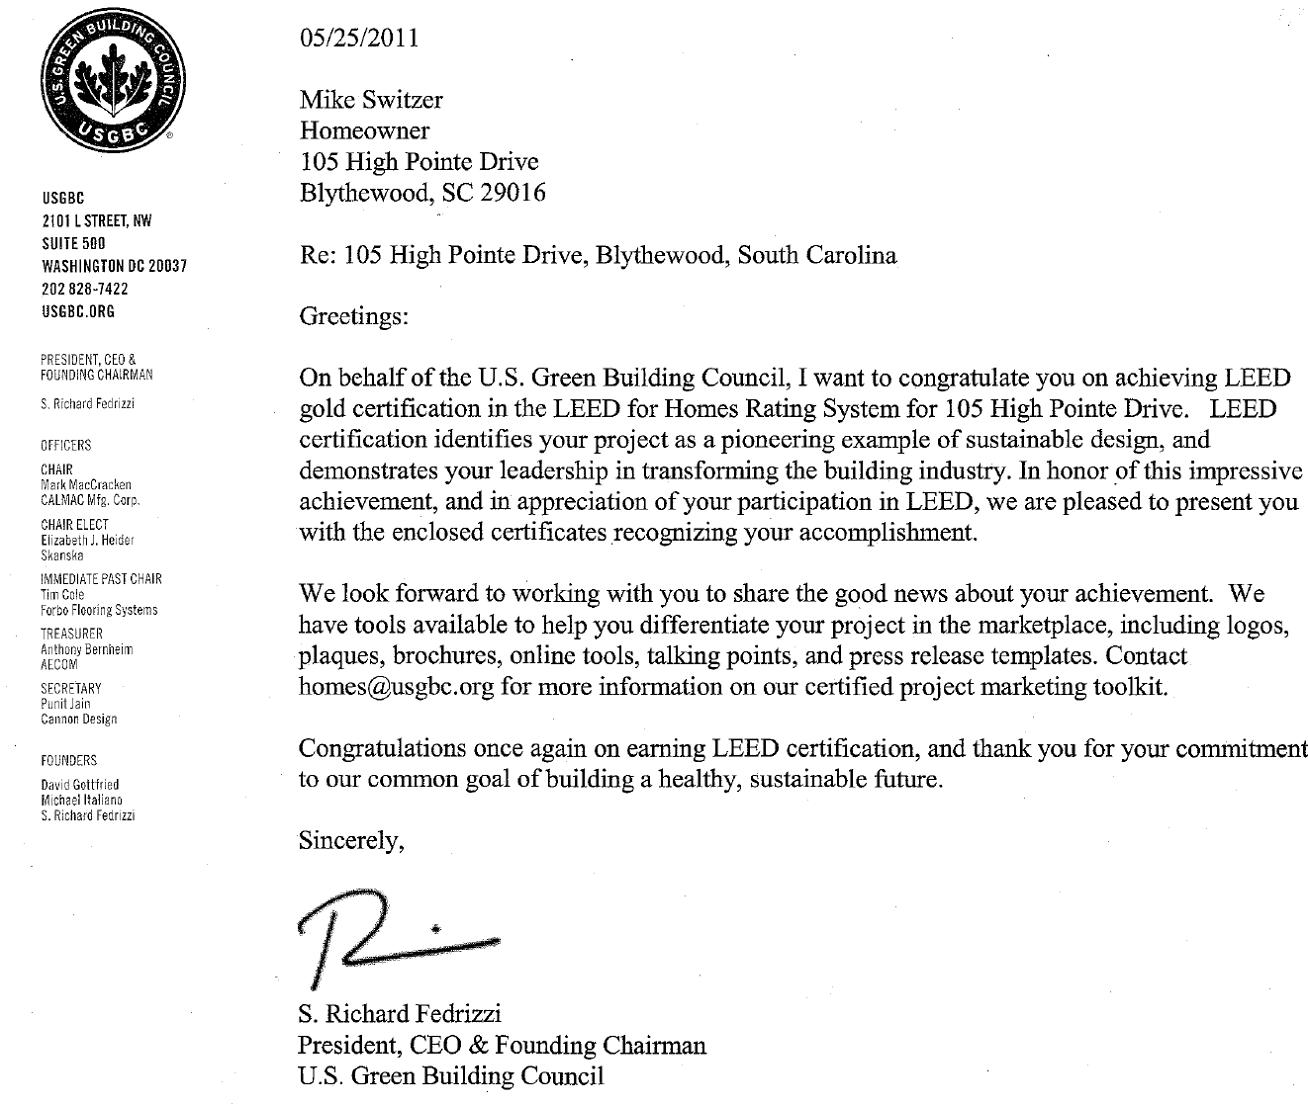 leed letter template going green